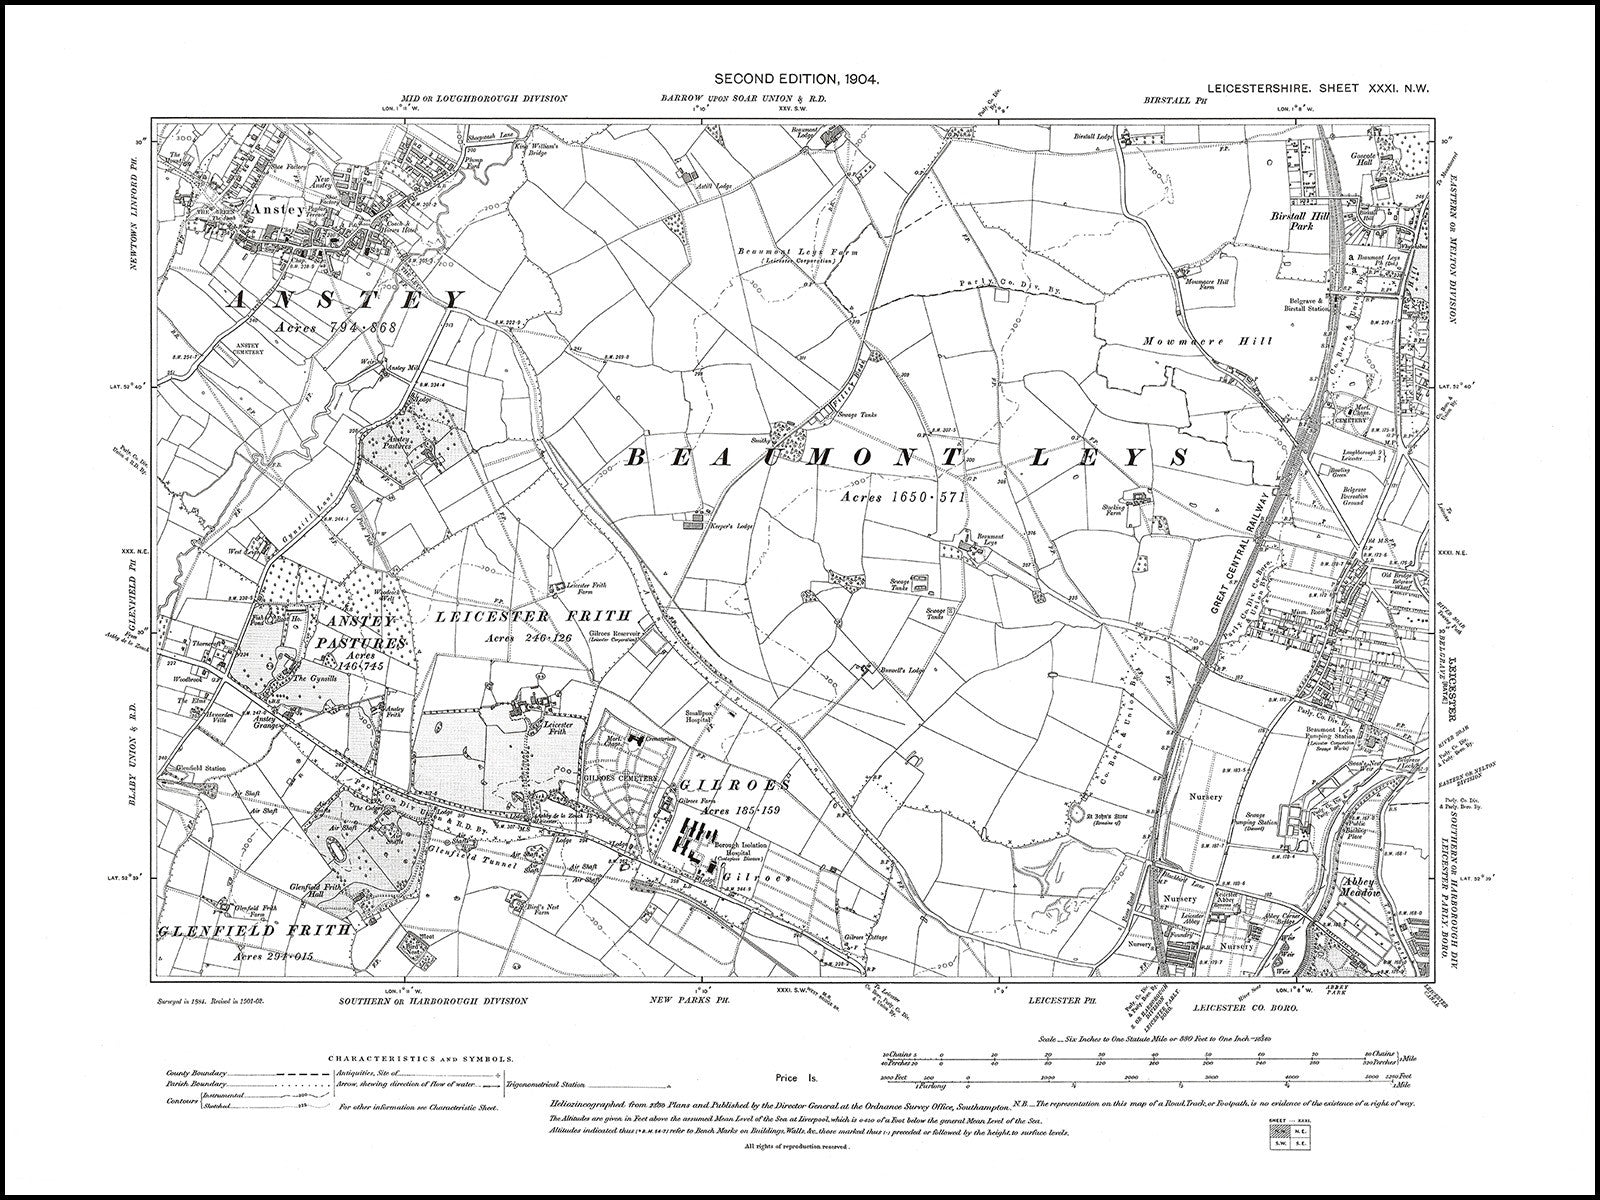 Leicestershire Uk Map.Old Map 1904 Leicester Nw Anstey Old Towns Maps